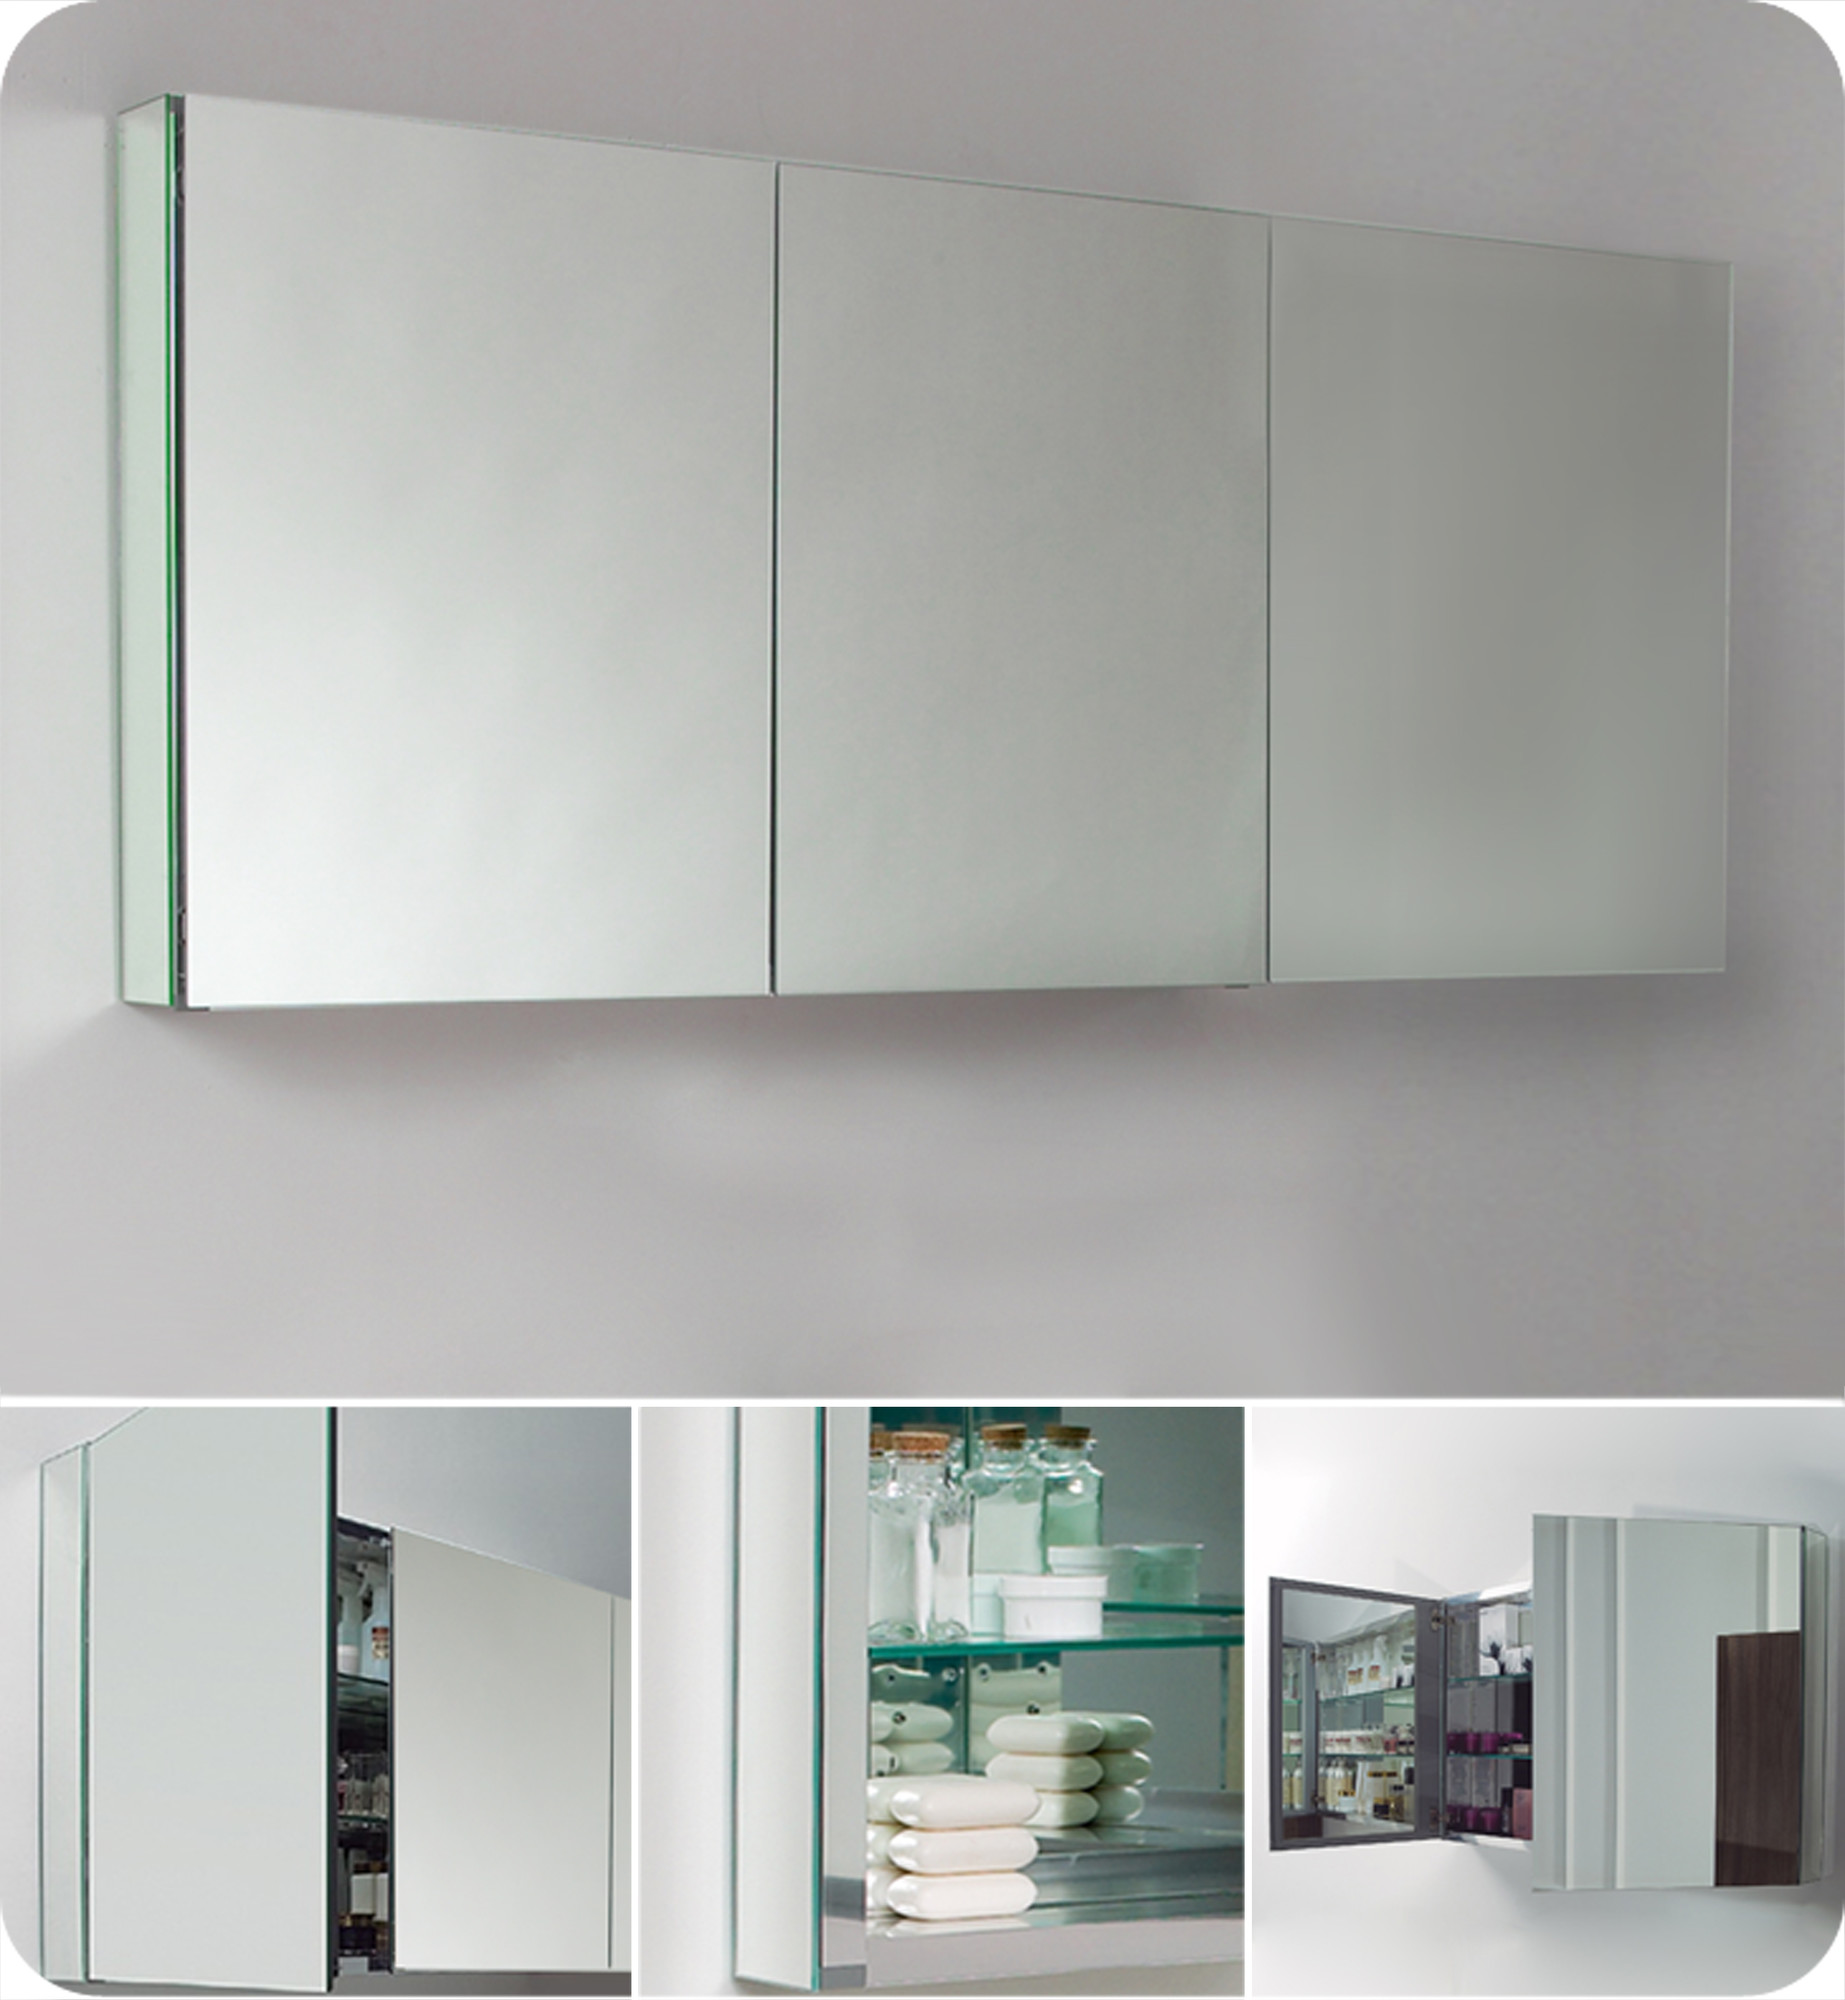 Fresca 60 Inch Wide Bathroom Medicine Cabinet With Mirrors